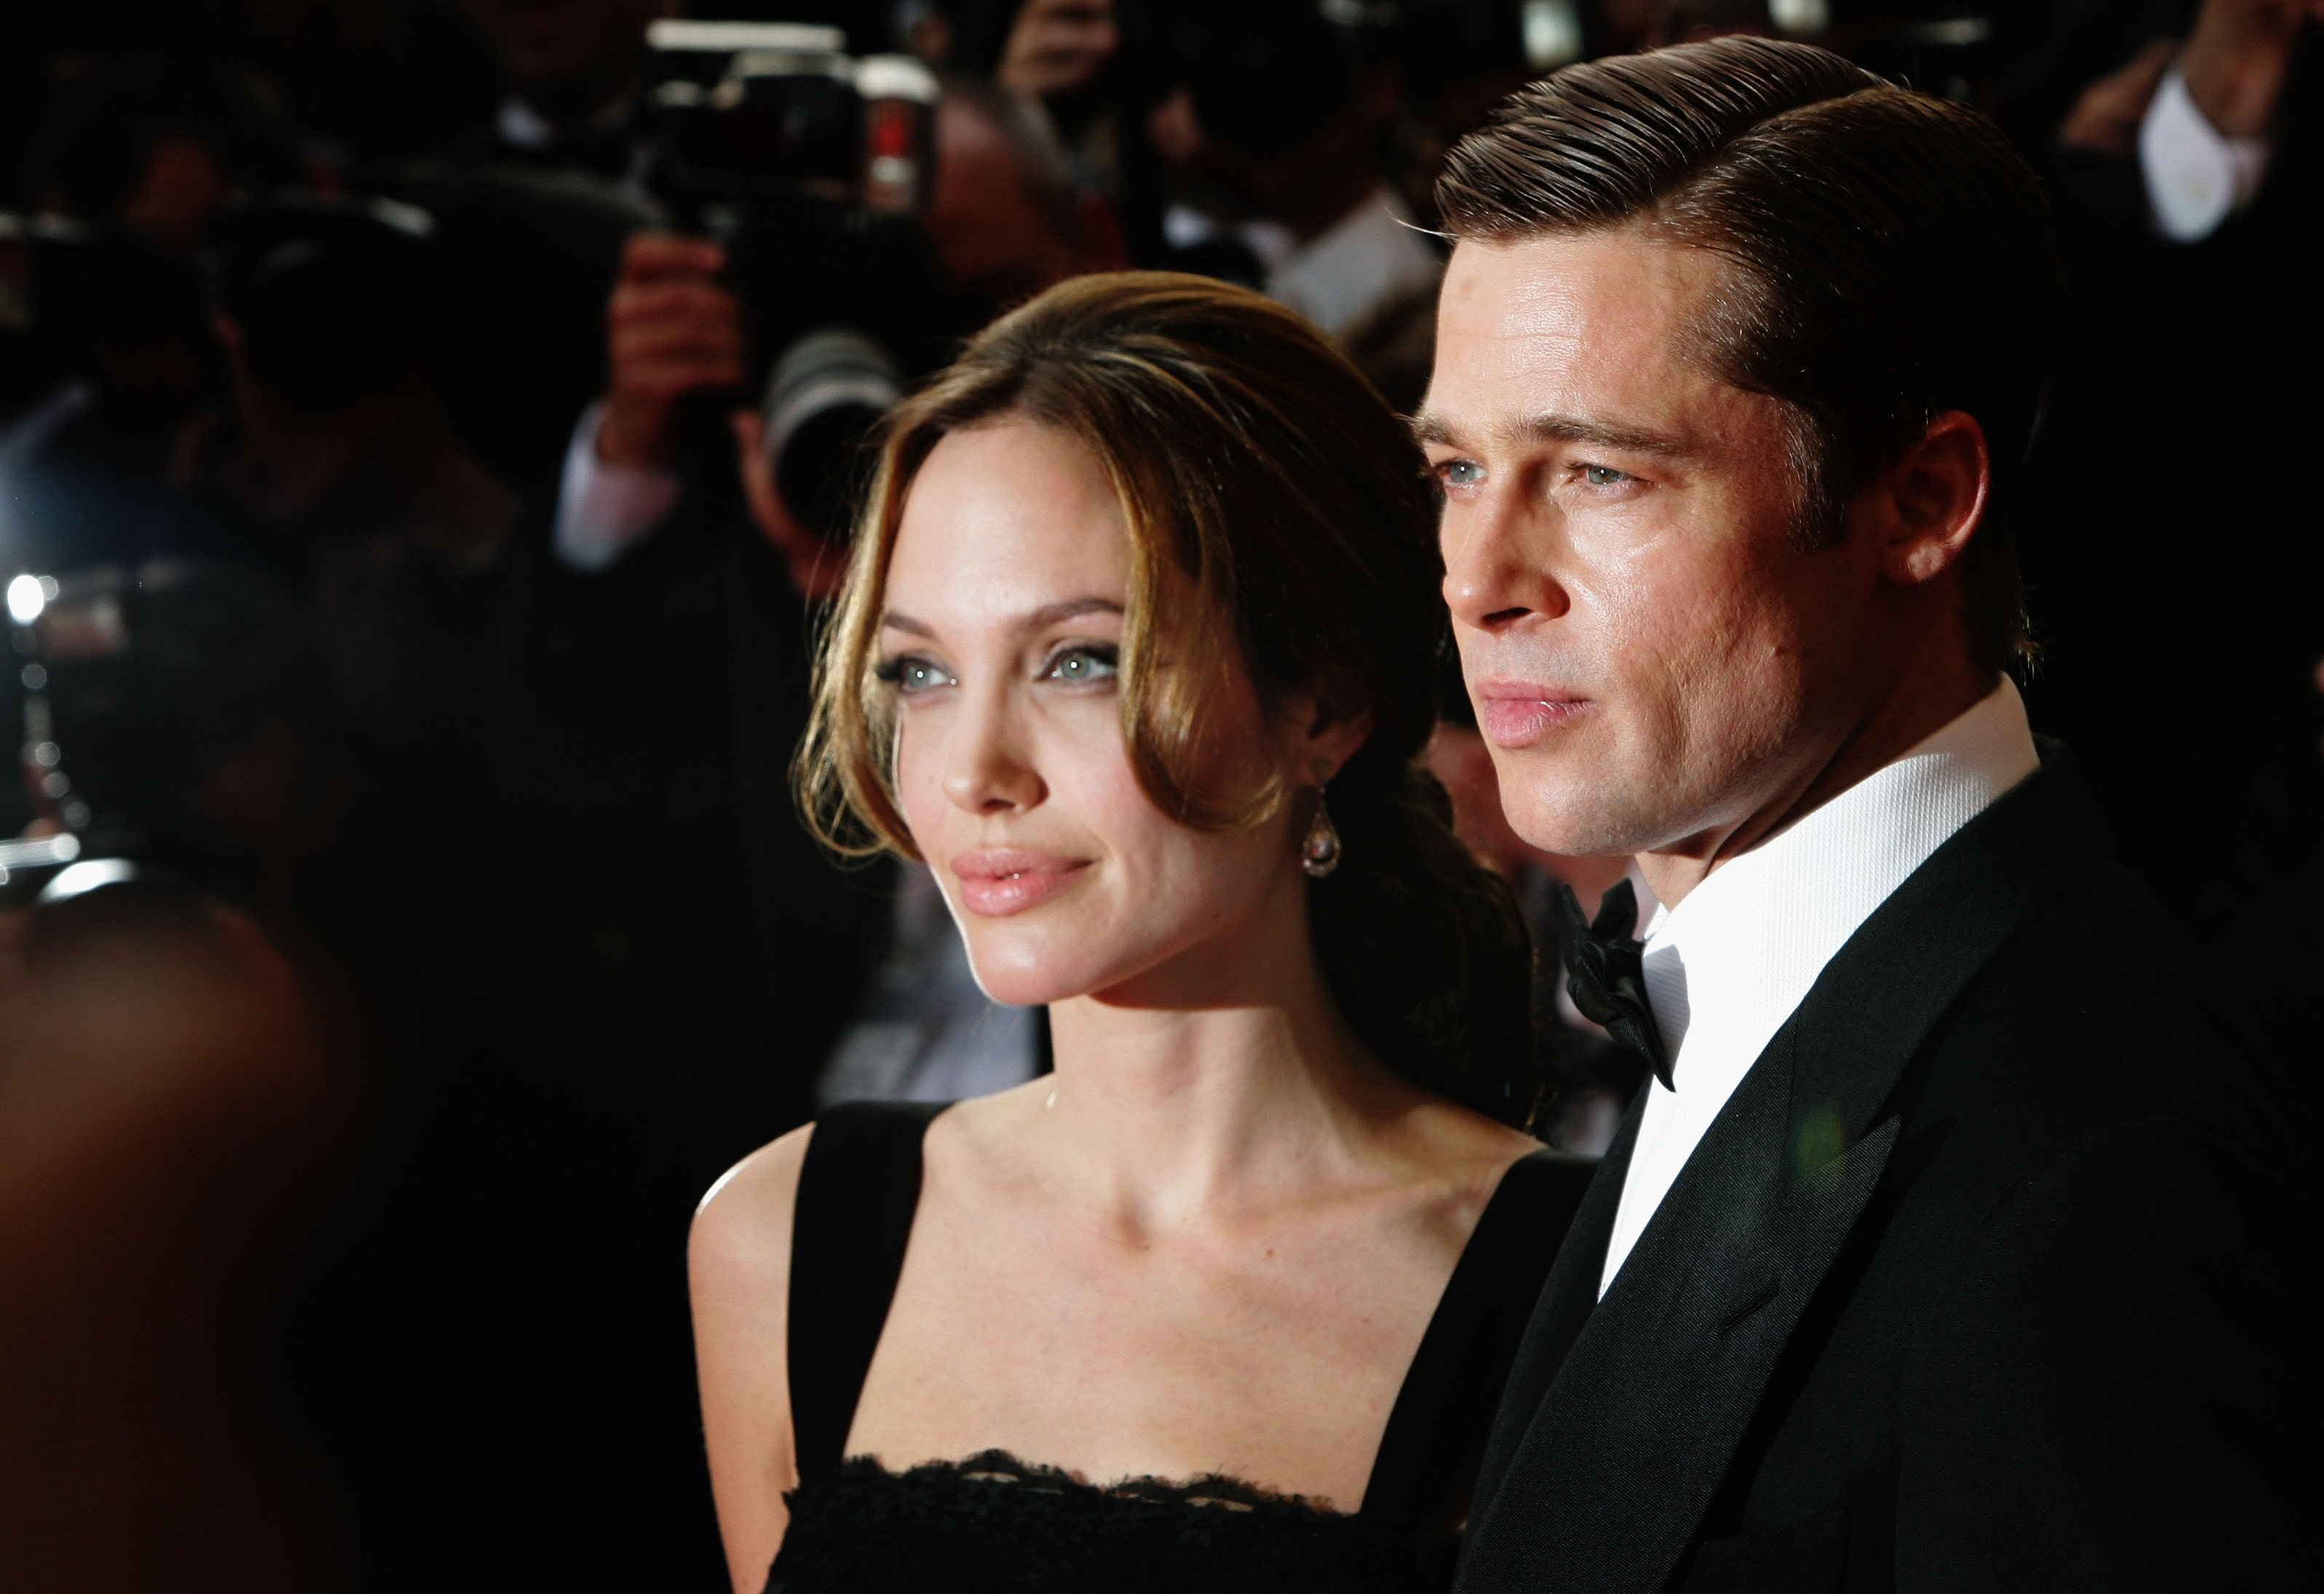 """Angelina Jolie and Brad Pitt attend the premiere of """"A Mighty Heart"""" in Cannes, France on May 21, 2007 